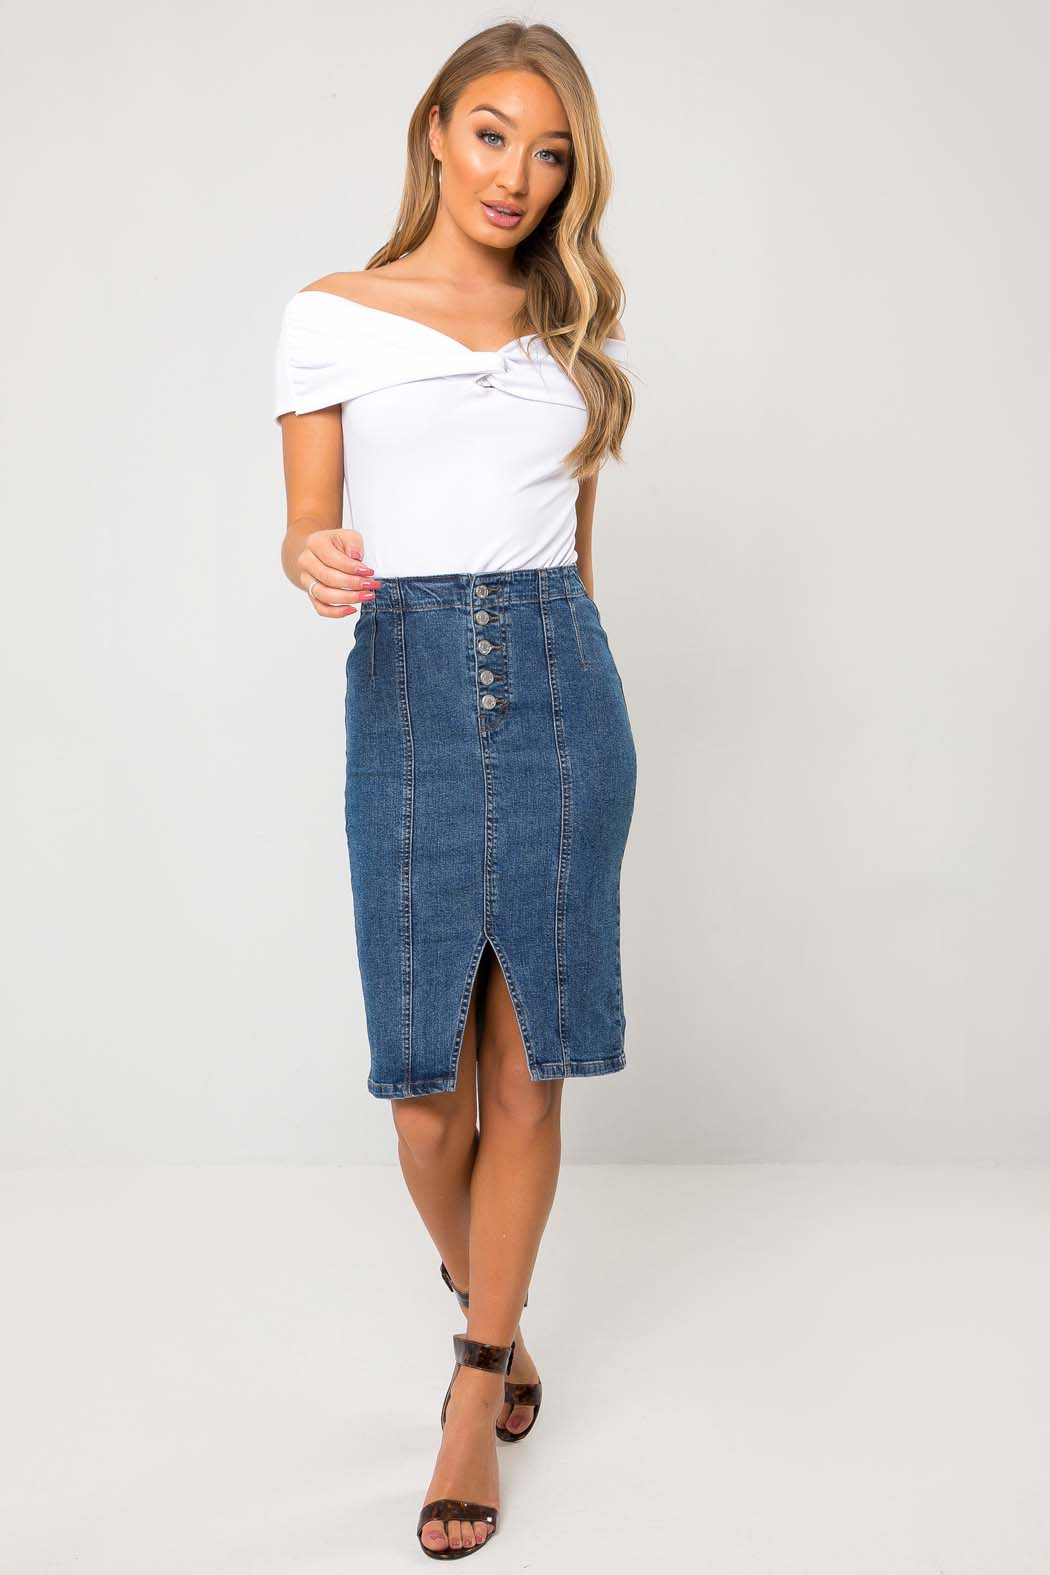 Hestia Button Up Blue Denim Pencil Skirt